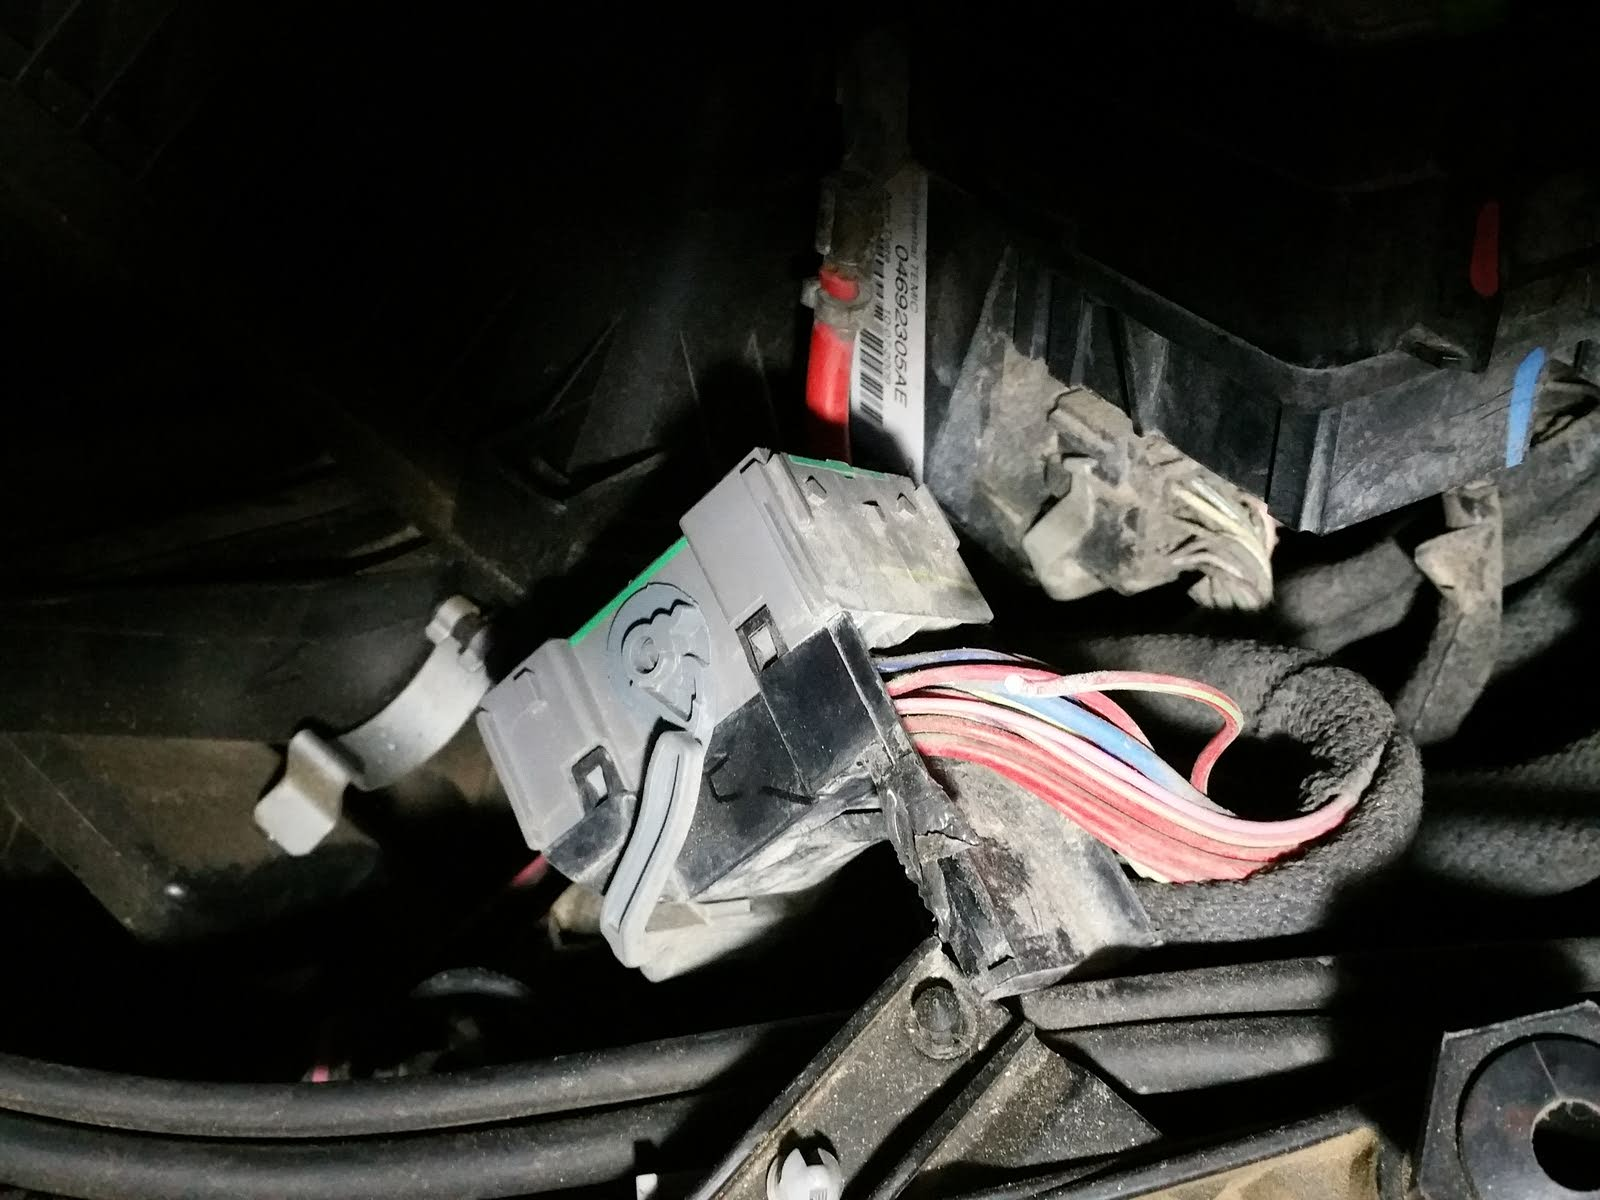 Dodge Journey Questions Loss Of Power On Drivers Side Window Honda Pilot Trailer Wiring Harness Melted If It Doesnt Light Check The Wire At Grey Connector Under Fuse Panel Box Hood